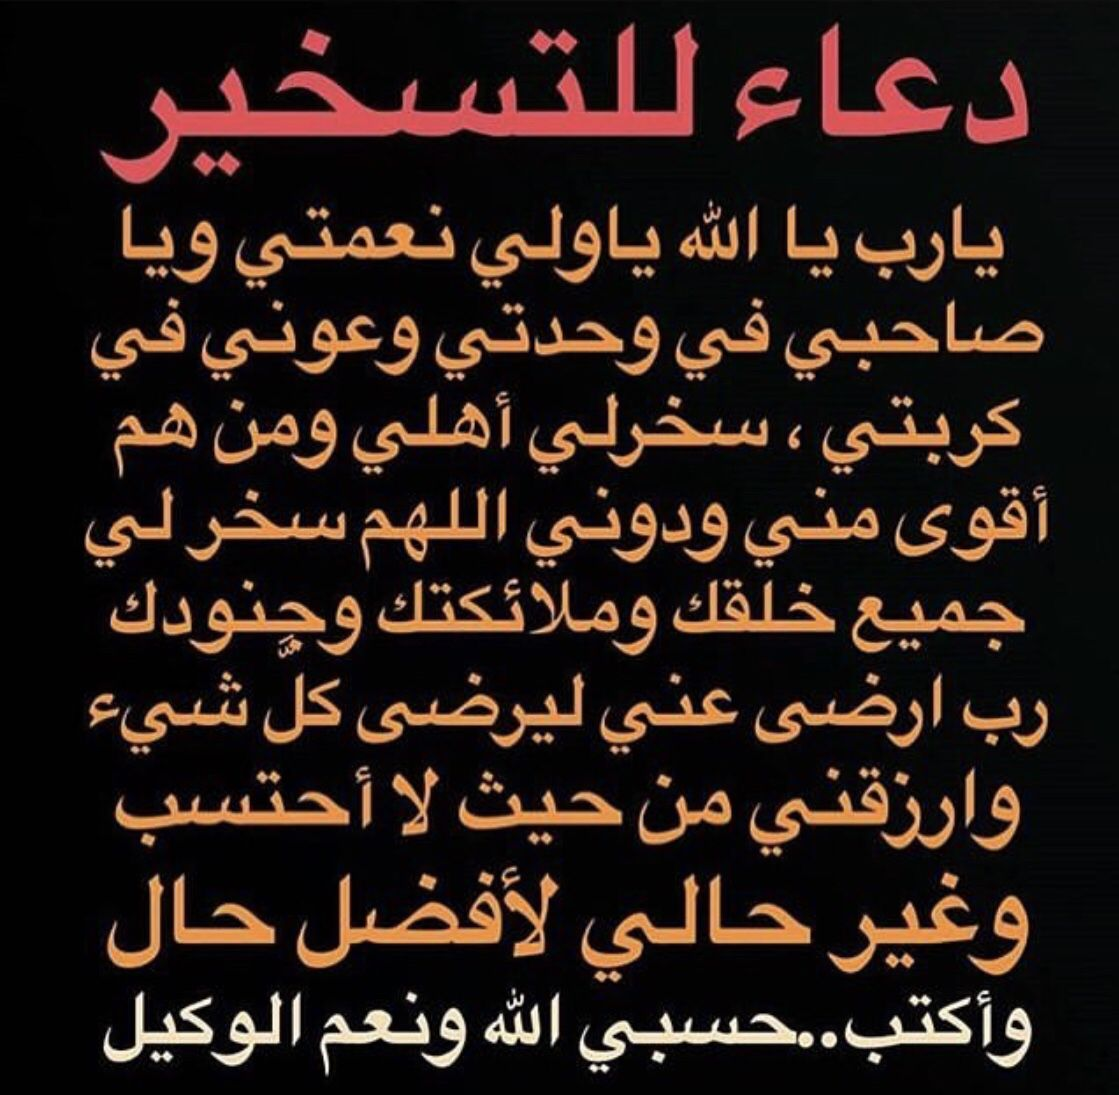 Pin By Kara Lamia On Priere Islam Facts Islamic Quotes Quran Islamic Phrases